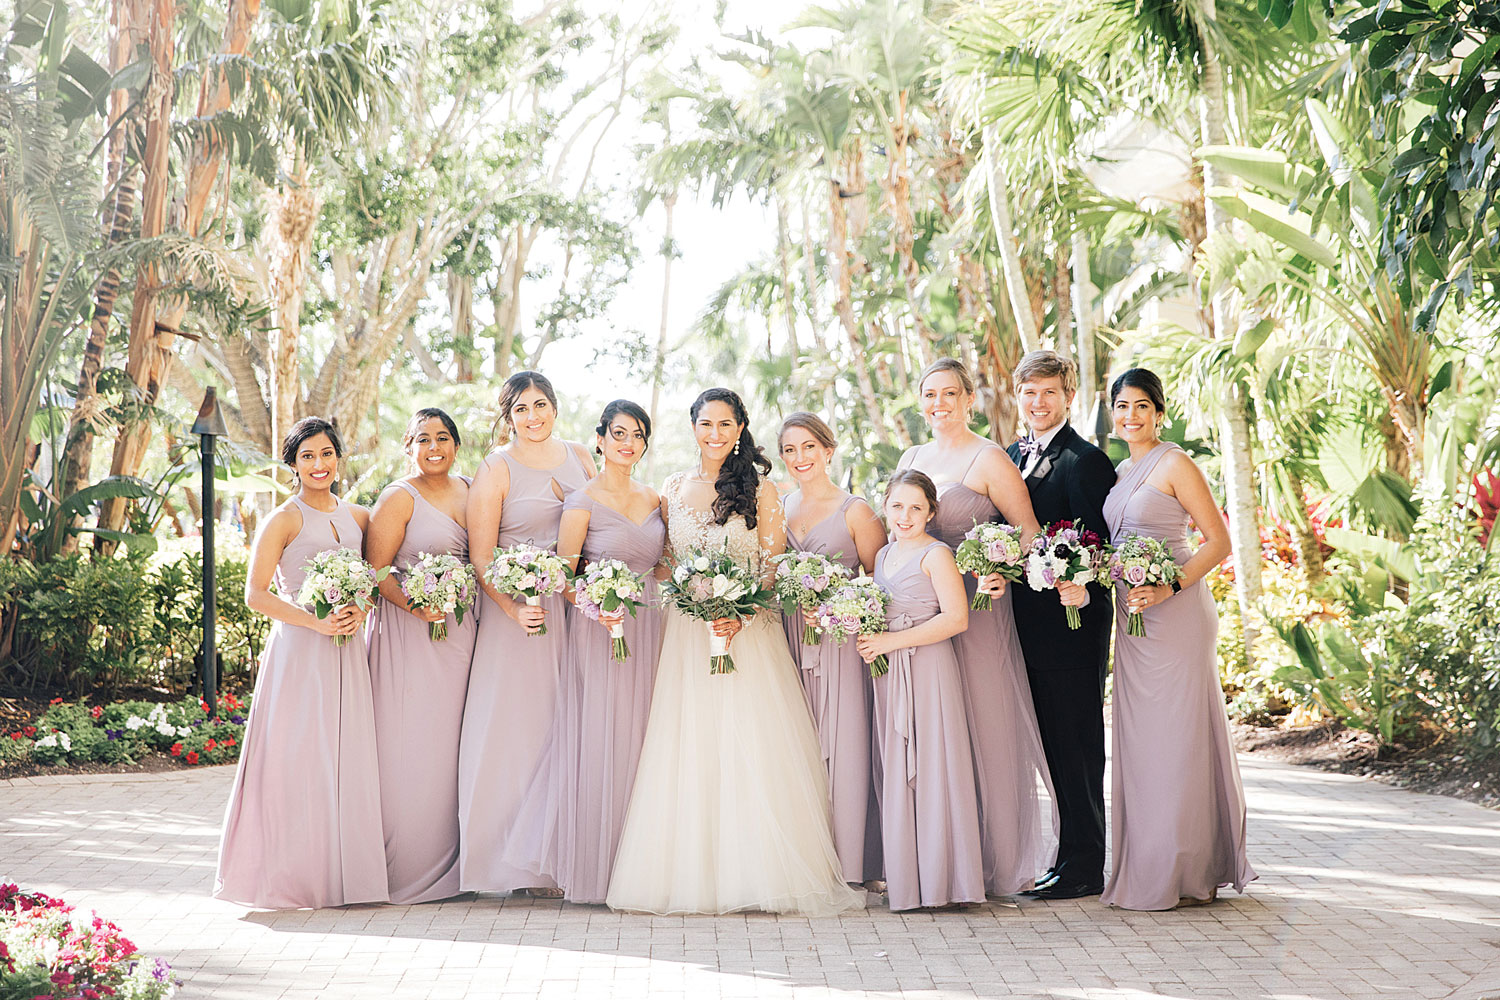 Inside Weddings magazine Spring 2019 issue wedding party bridesmaids in purple lavender dresses